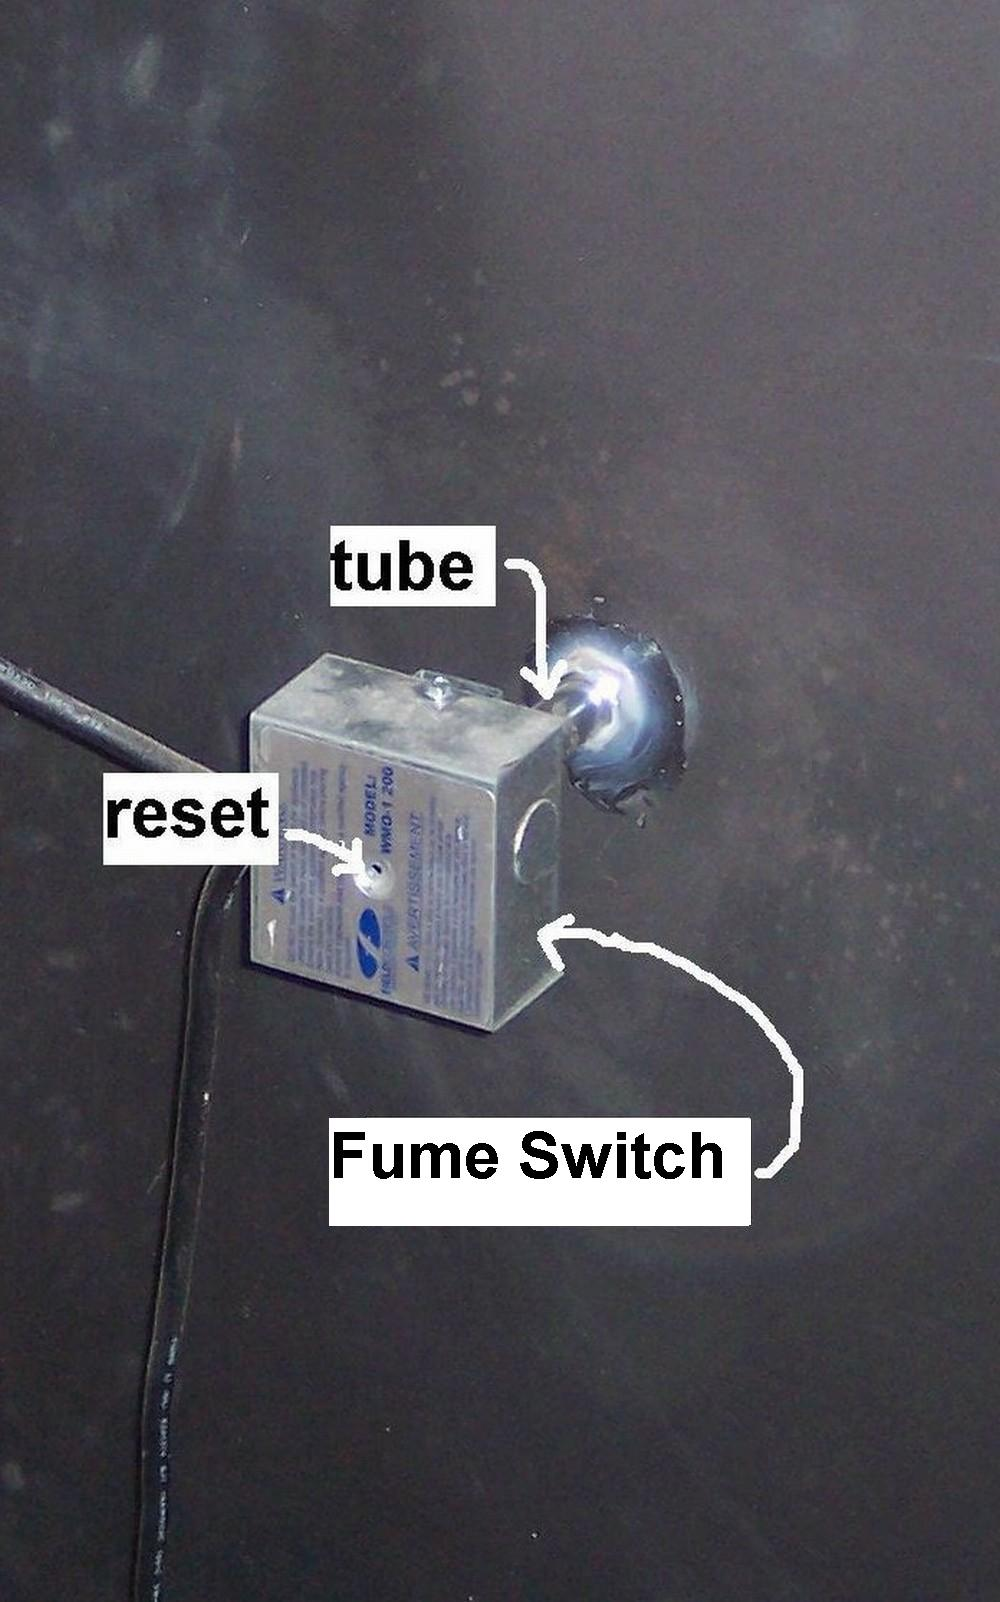 fume switch.JPG